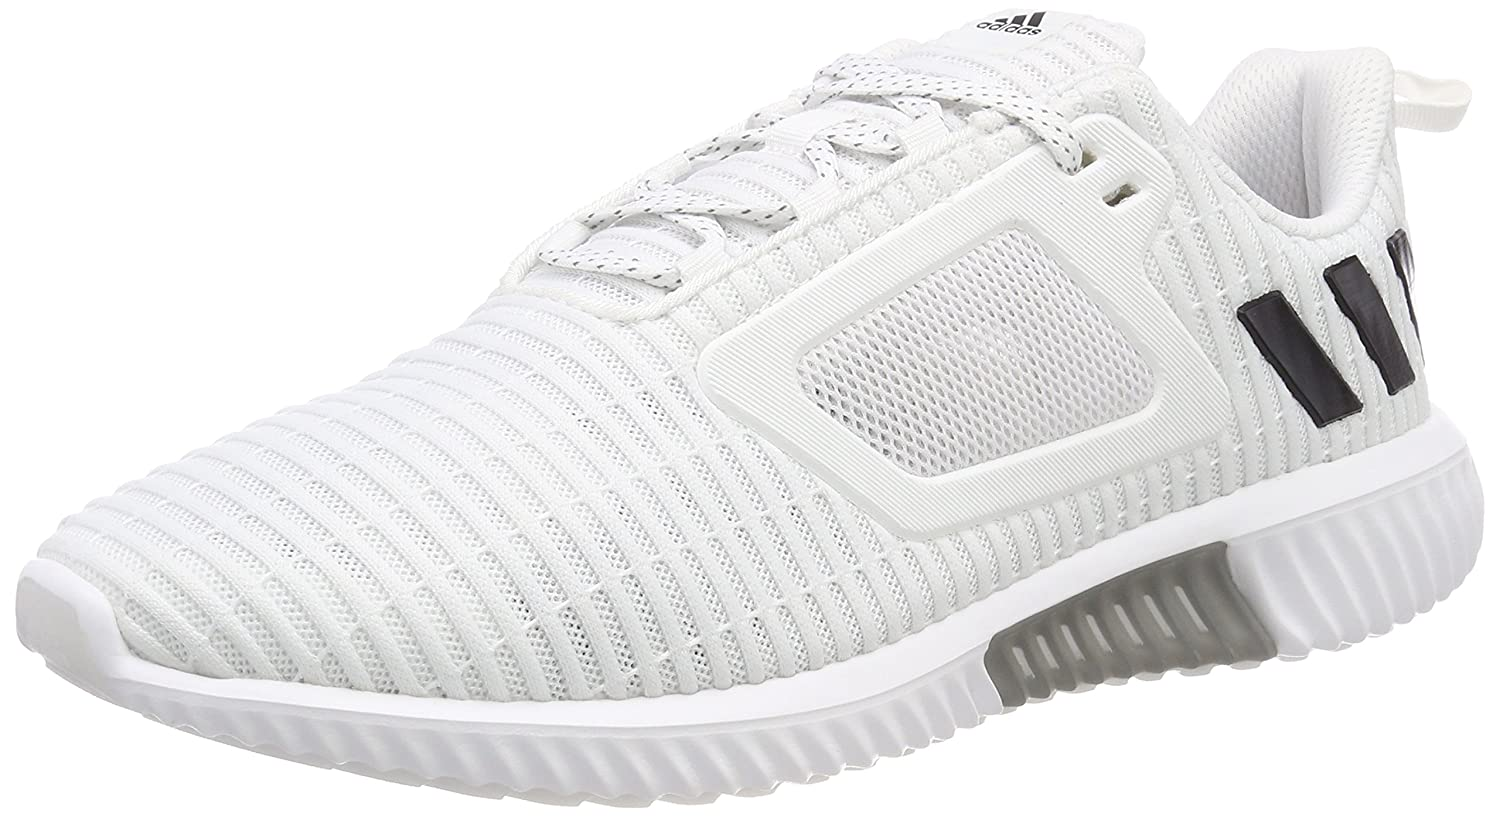 adidas Running Climacool Shoes Men's B078L3G4ZP